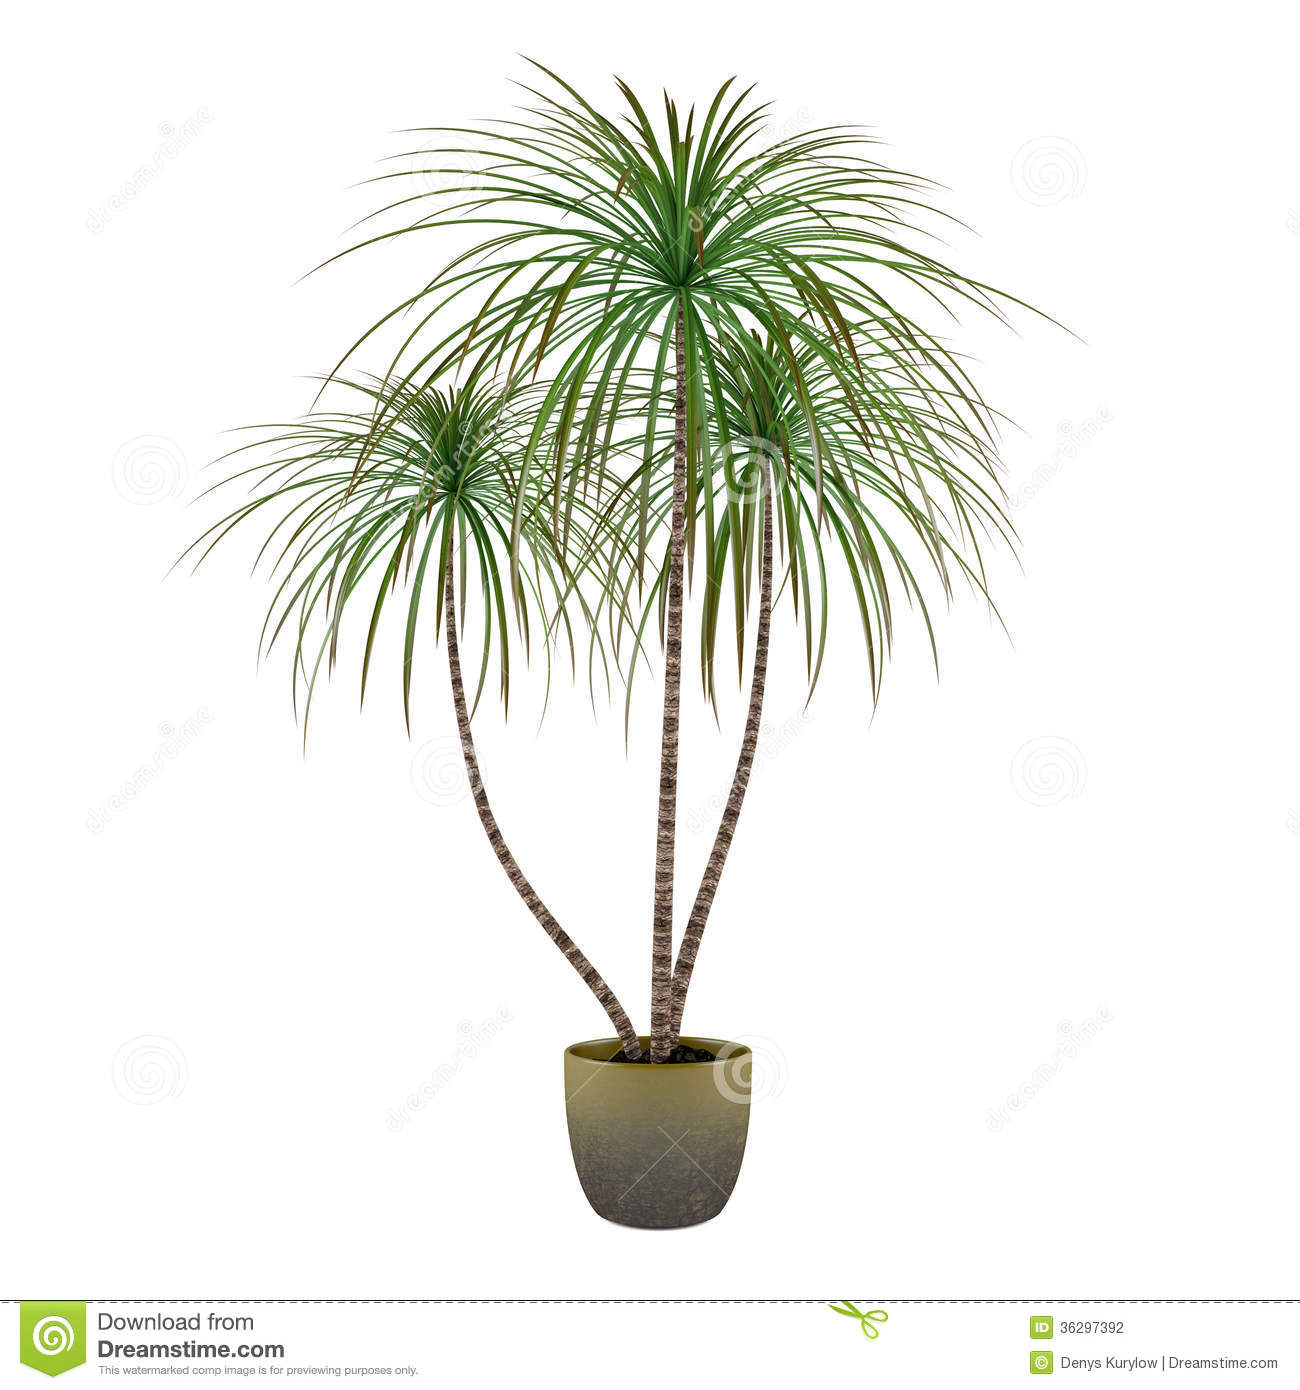 Palm Plant Bamboo Tree In The Pot Stock Illustration - Illustration on indoor foliage plants, indoor houseplants, home depot plants, types of indoor plants, indoor fruit plants, indoor blackberry plants, indoor ponytail palm, indoor palm trees, indoor palms low light, dracaena like plants, indoor potted palms, indoor tree plants, low light indoor plants, large indoor plants, indoor corn plant, tall indoor plants, indoor yucca plant, best indoor plants, indoor palm bushes, kentia palms plants,